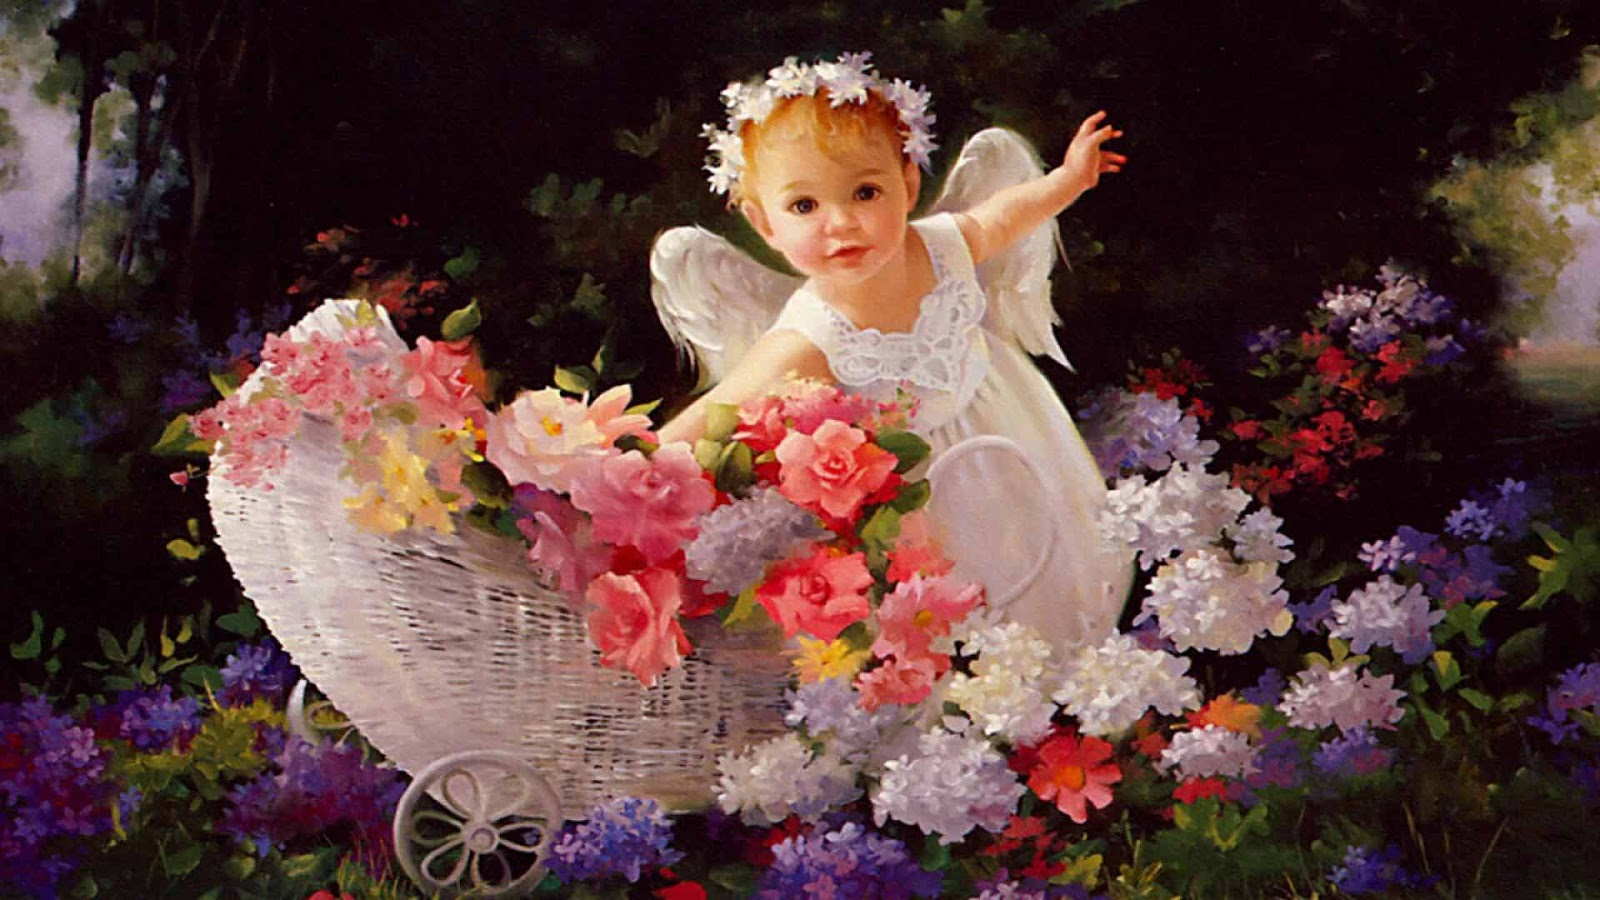 Hq wallpapers baby angel wallpapers - Angel baby pictures wallpapers ...